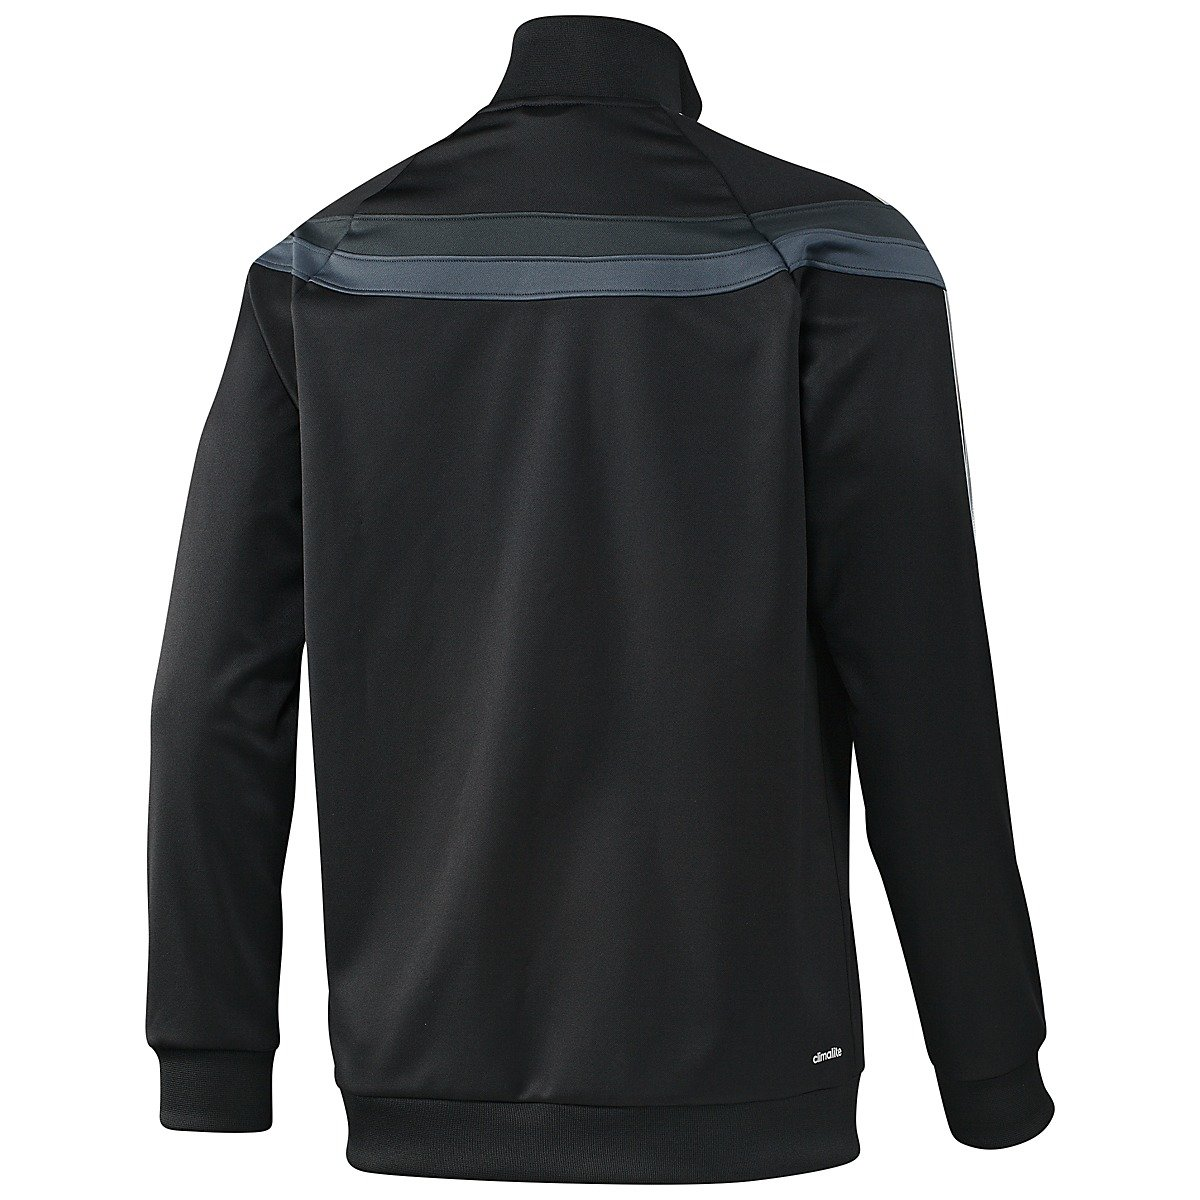 cd6386740eca Amazon.com   adidas Mexico Anthem Track Top Black Jacket (XS)   Soccer  Apparel   Sports   Outdoors